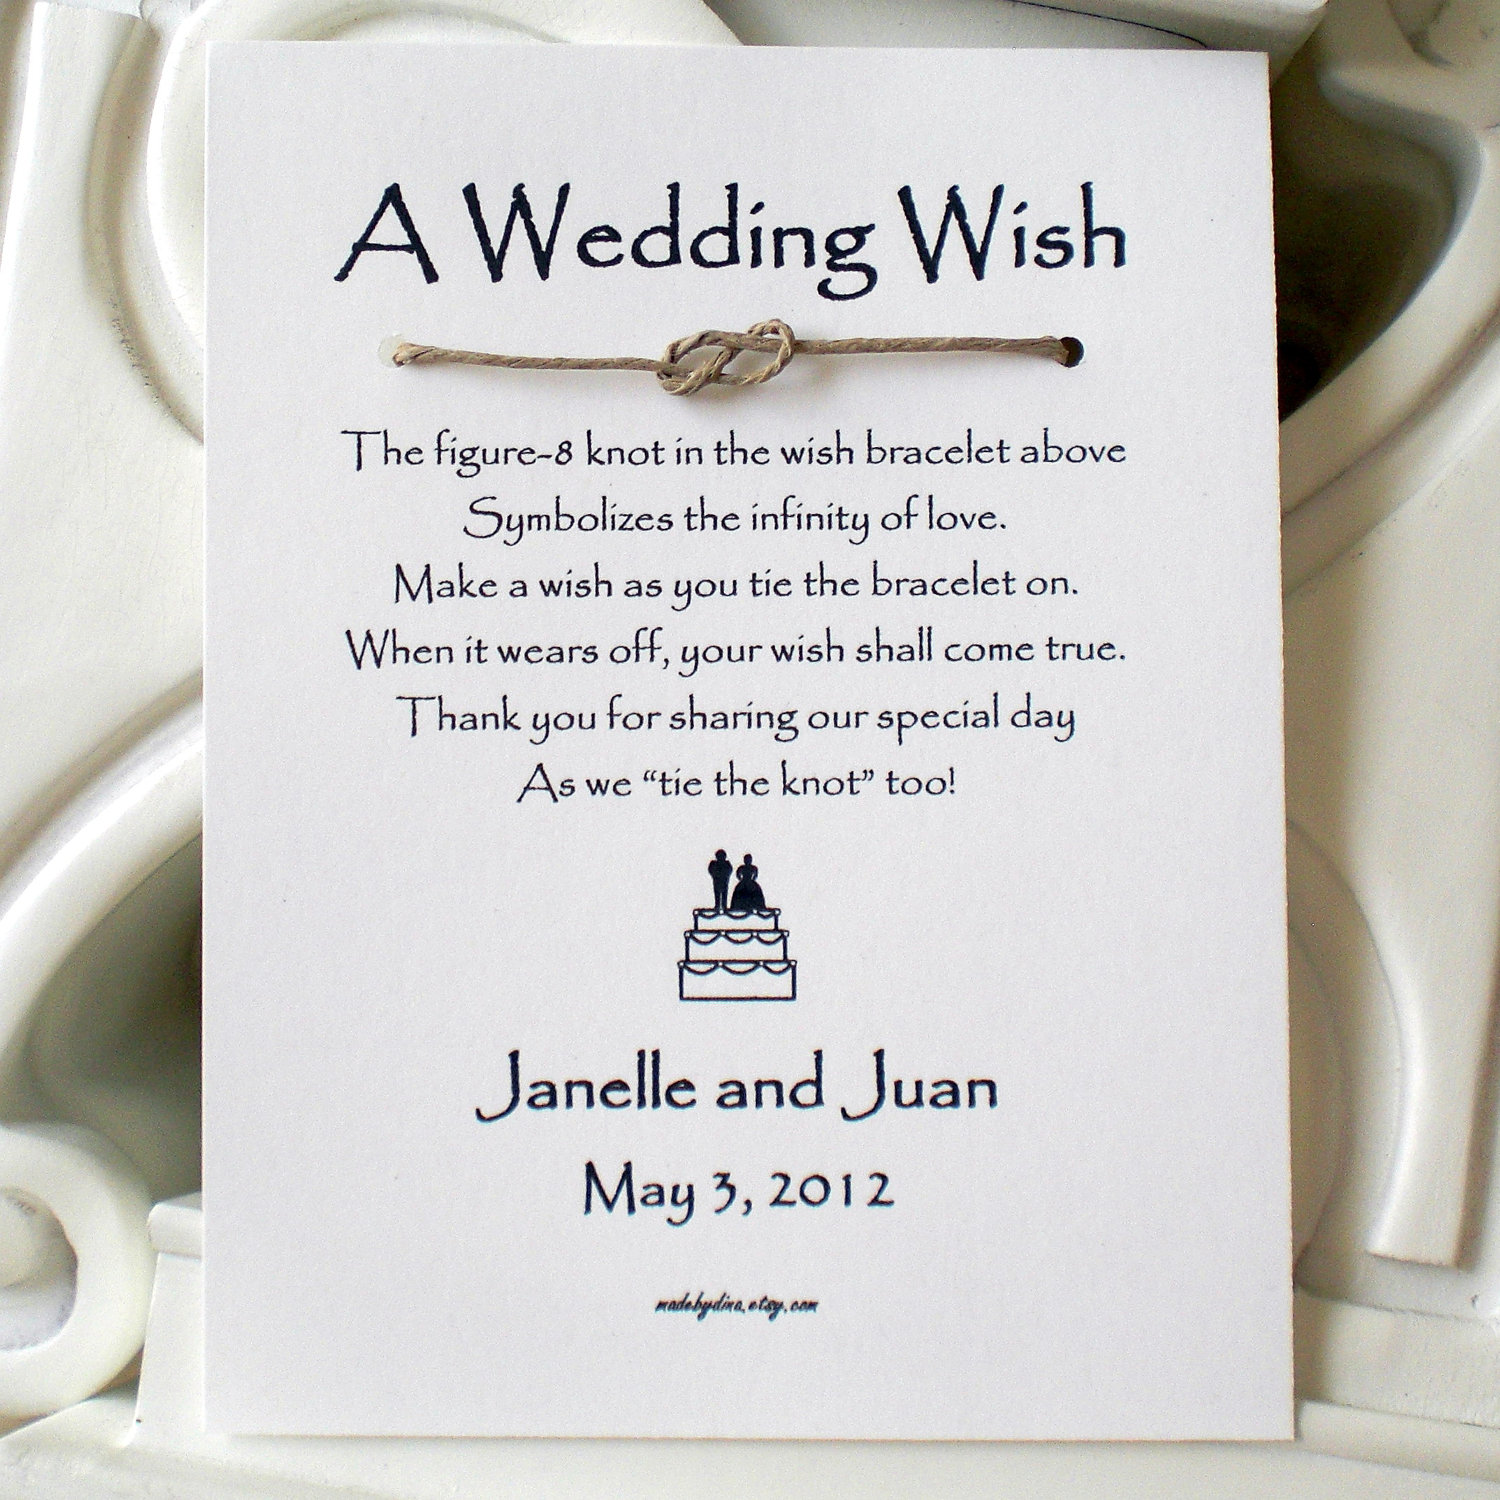 Collection Wedding Quotes For Card Pictures Weddings Center – Wedding Day Quotes for Cards